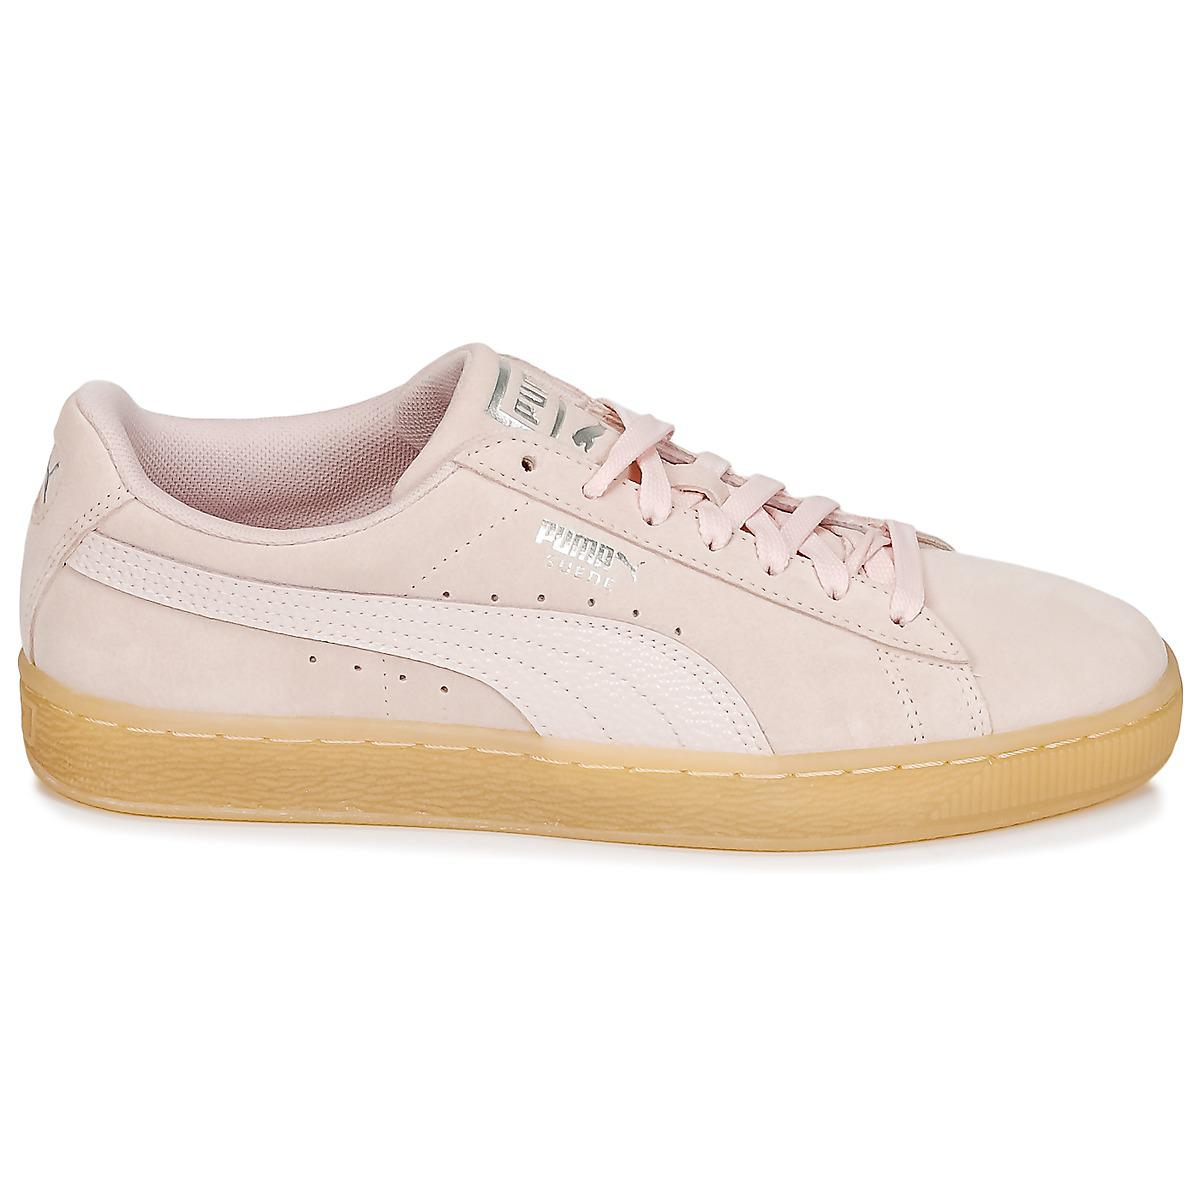 reputable site 97a92 70583 puma-pink-SUEDE-CLASSIC-BUBBLE-WS-femmes-Chaussures-en-rose.jpeg